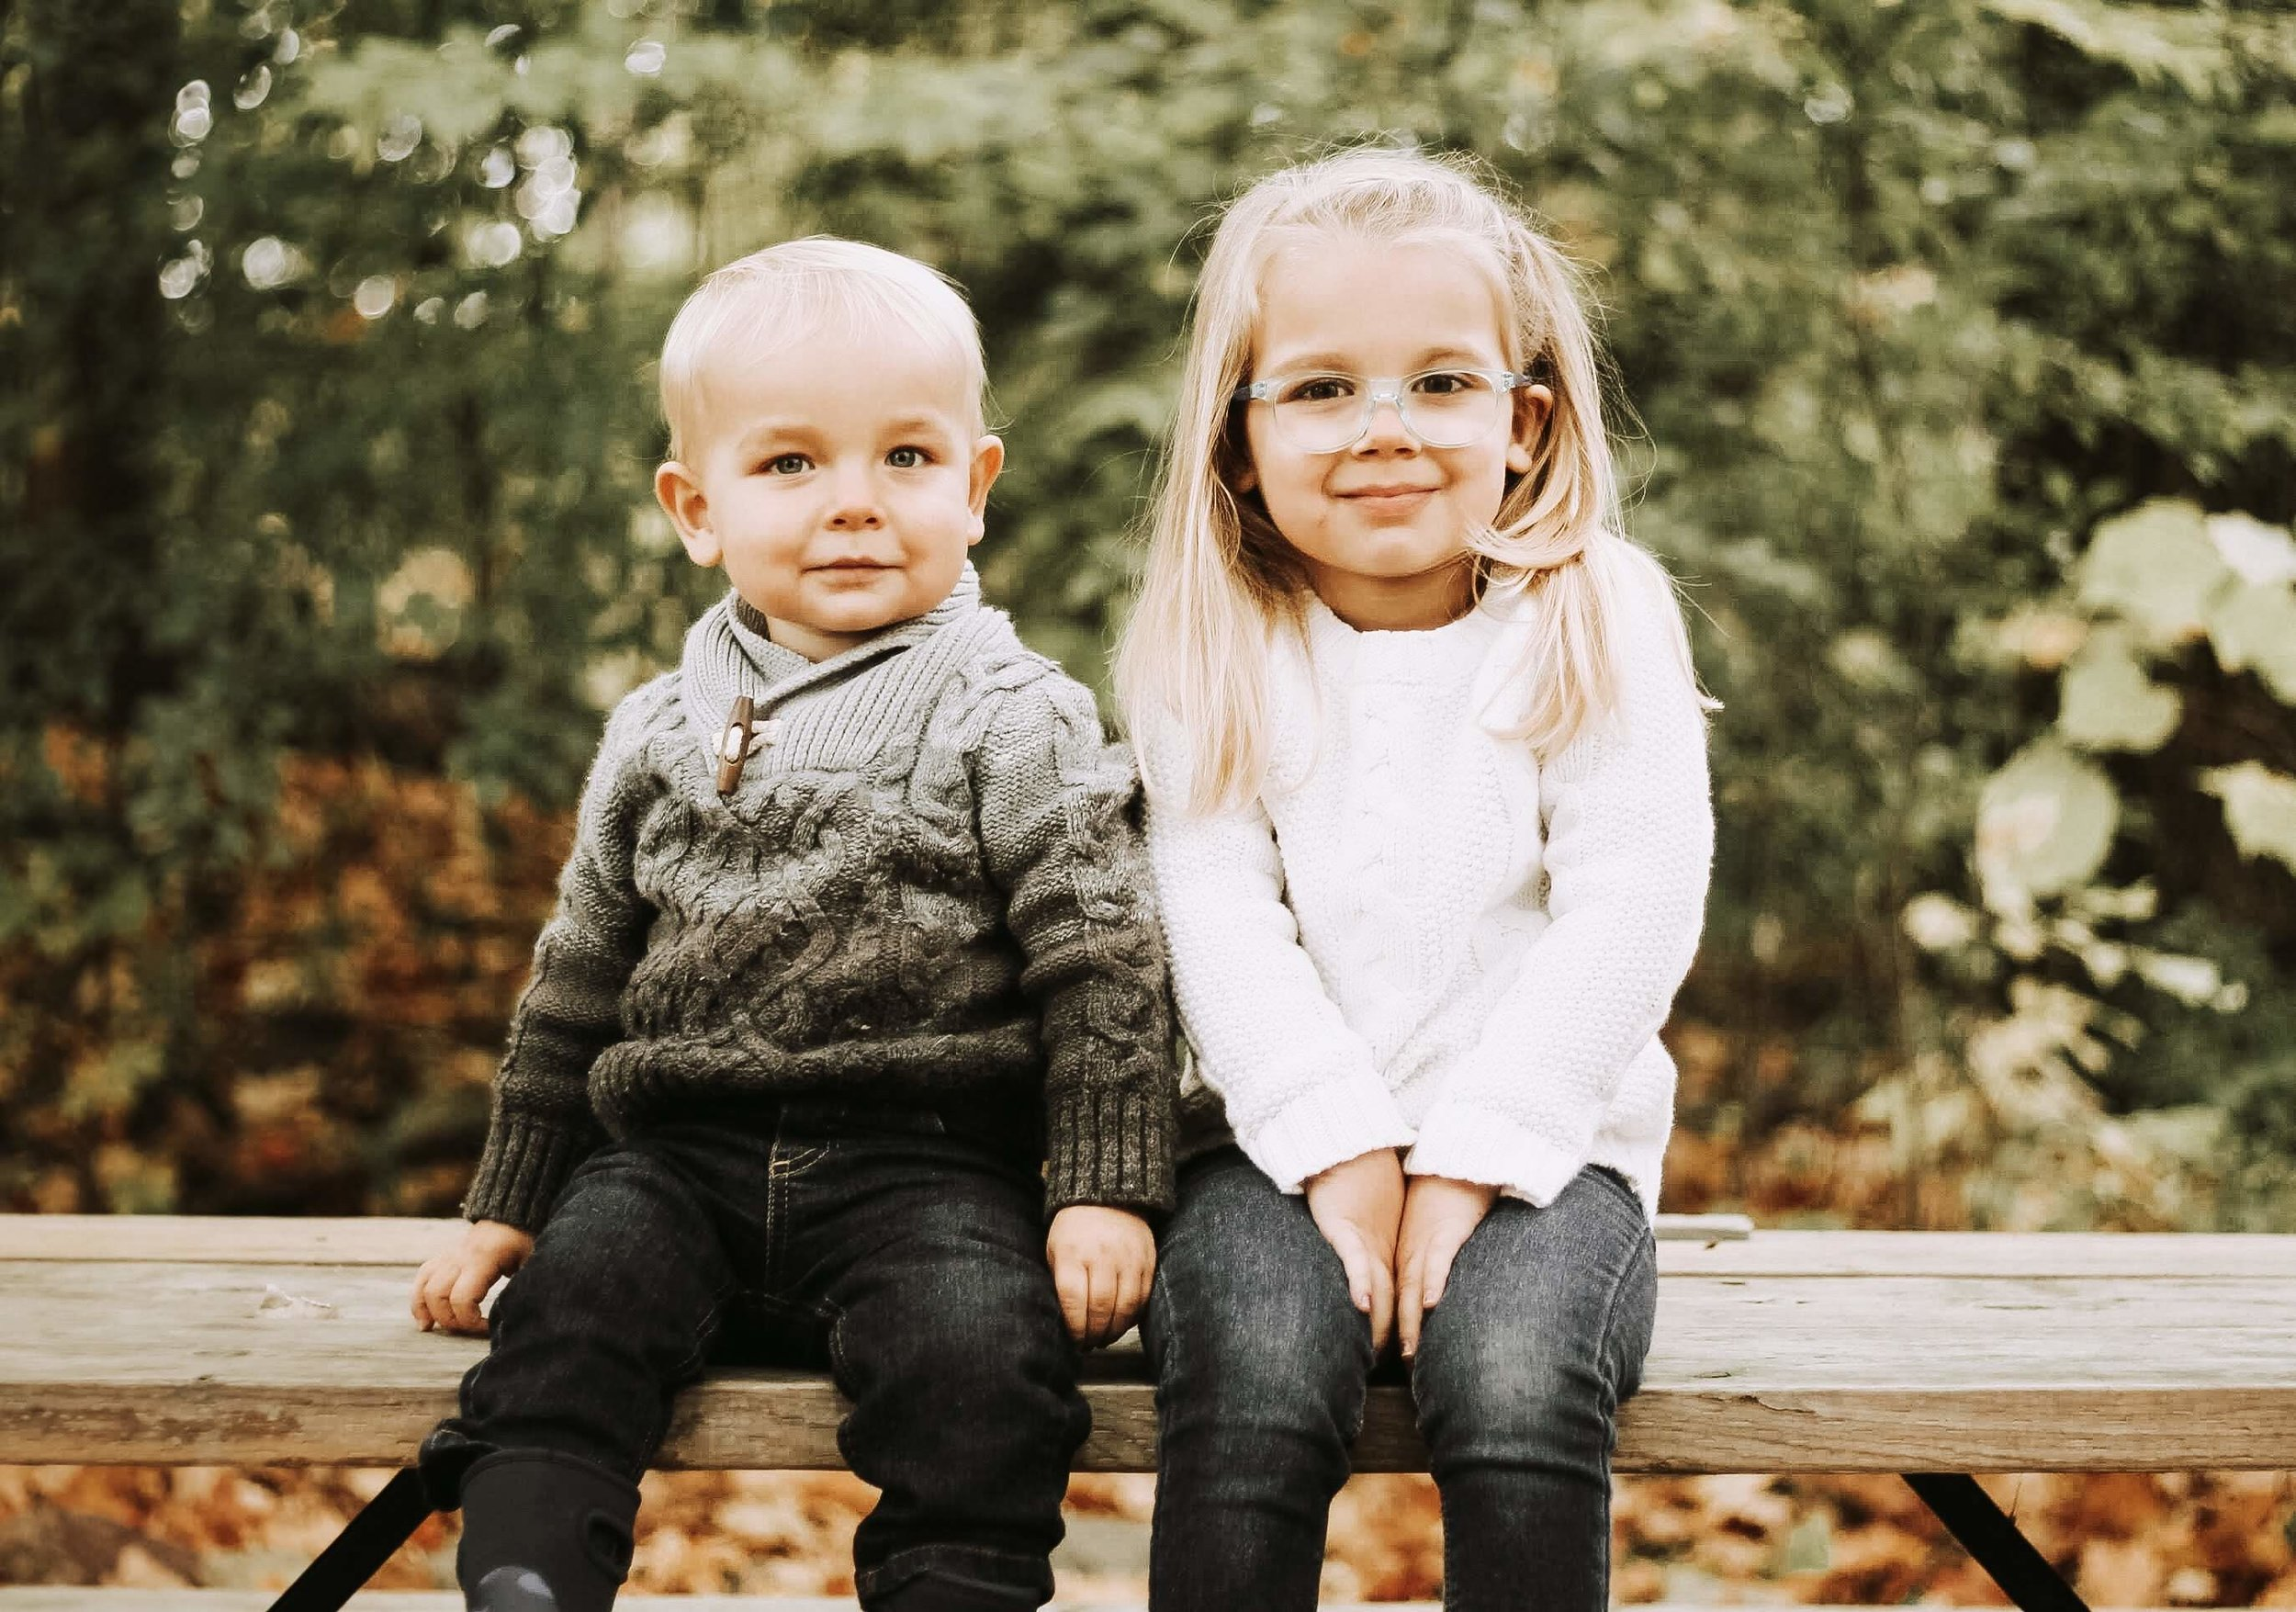 Older children, toddlers, photoshoot, family photos